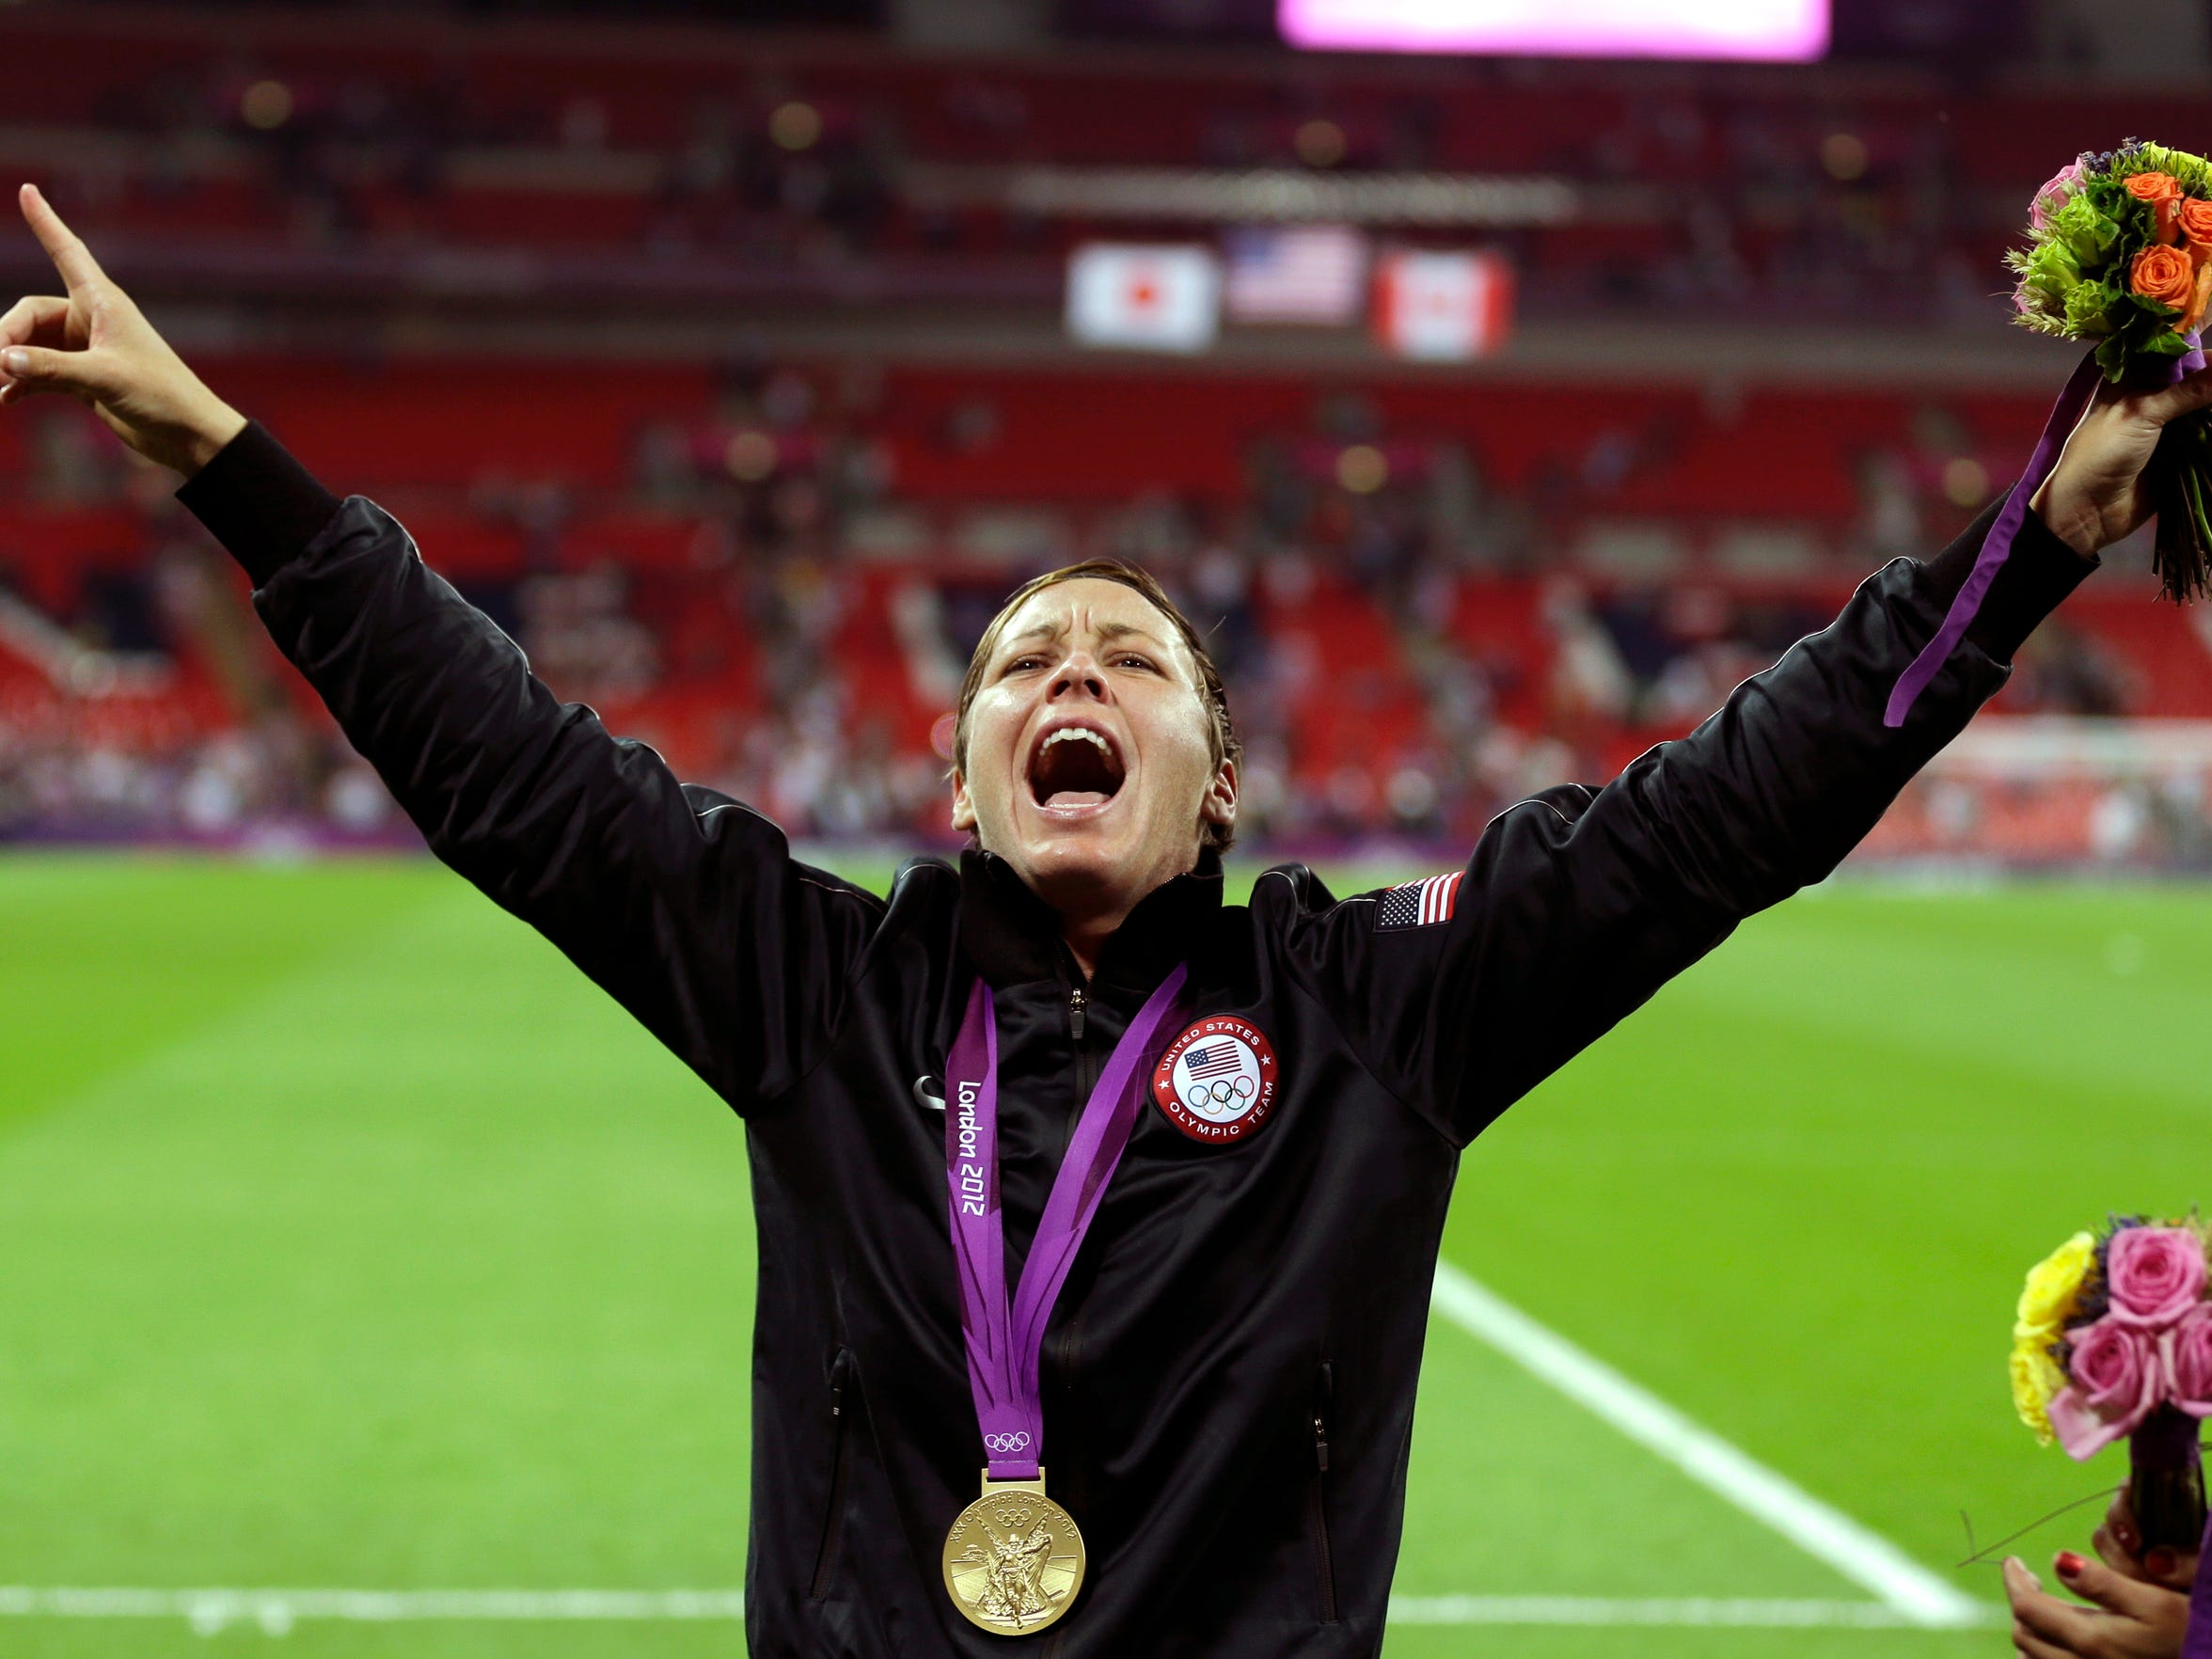 Abby Wambach celebrates winning the gold medal at the 2012 Summer Olympics in London.